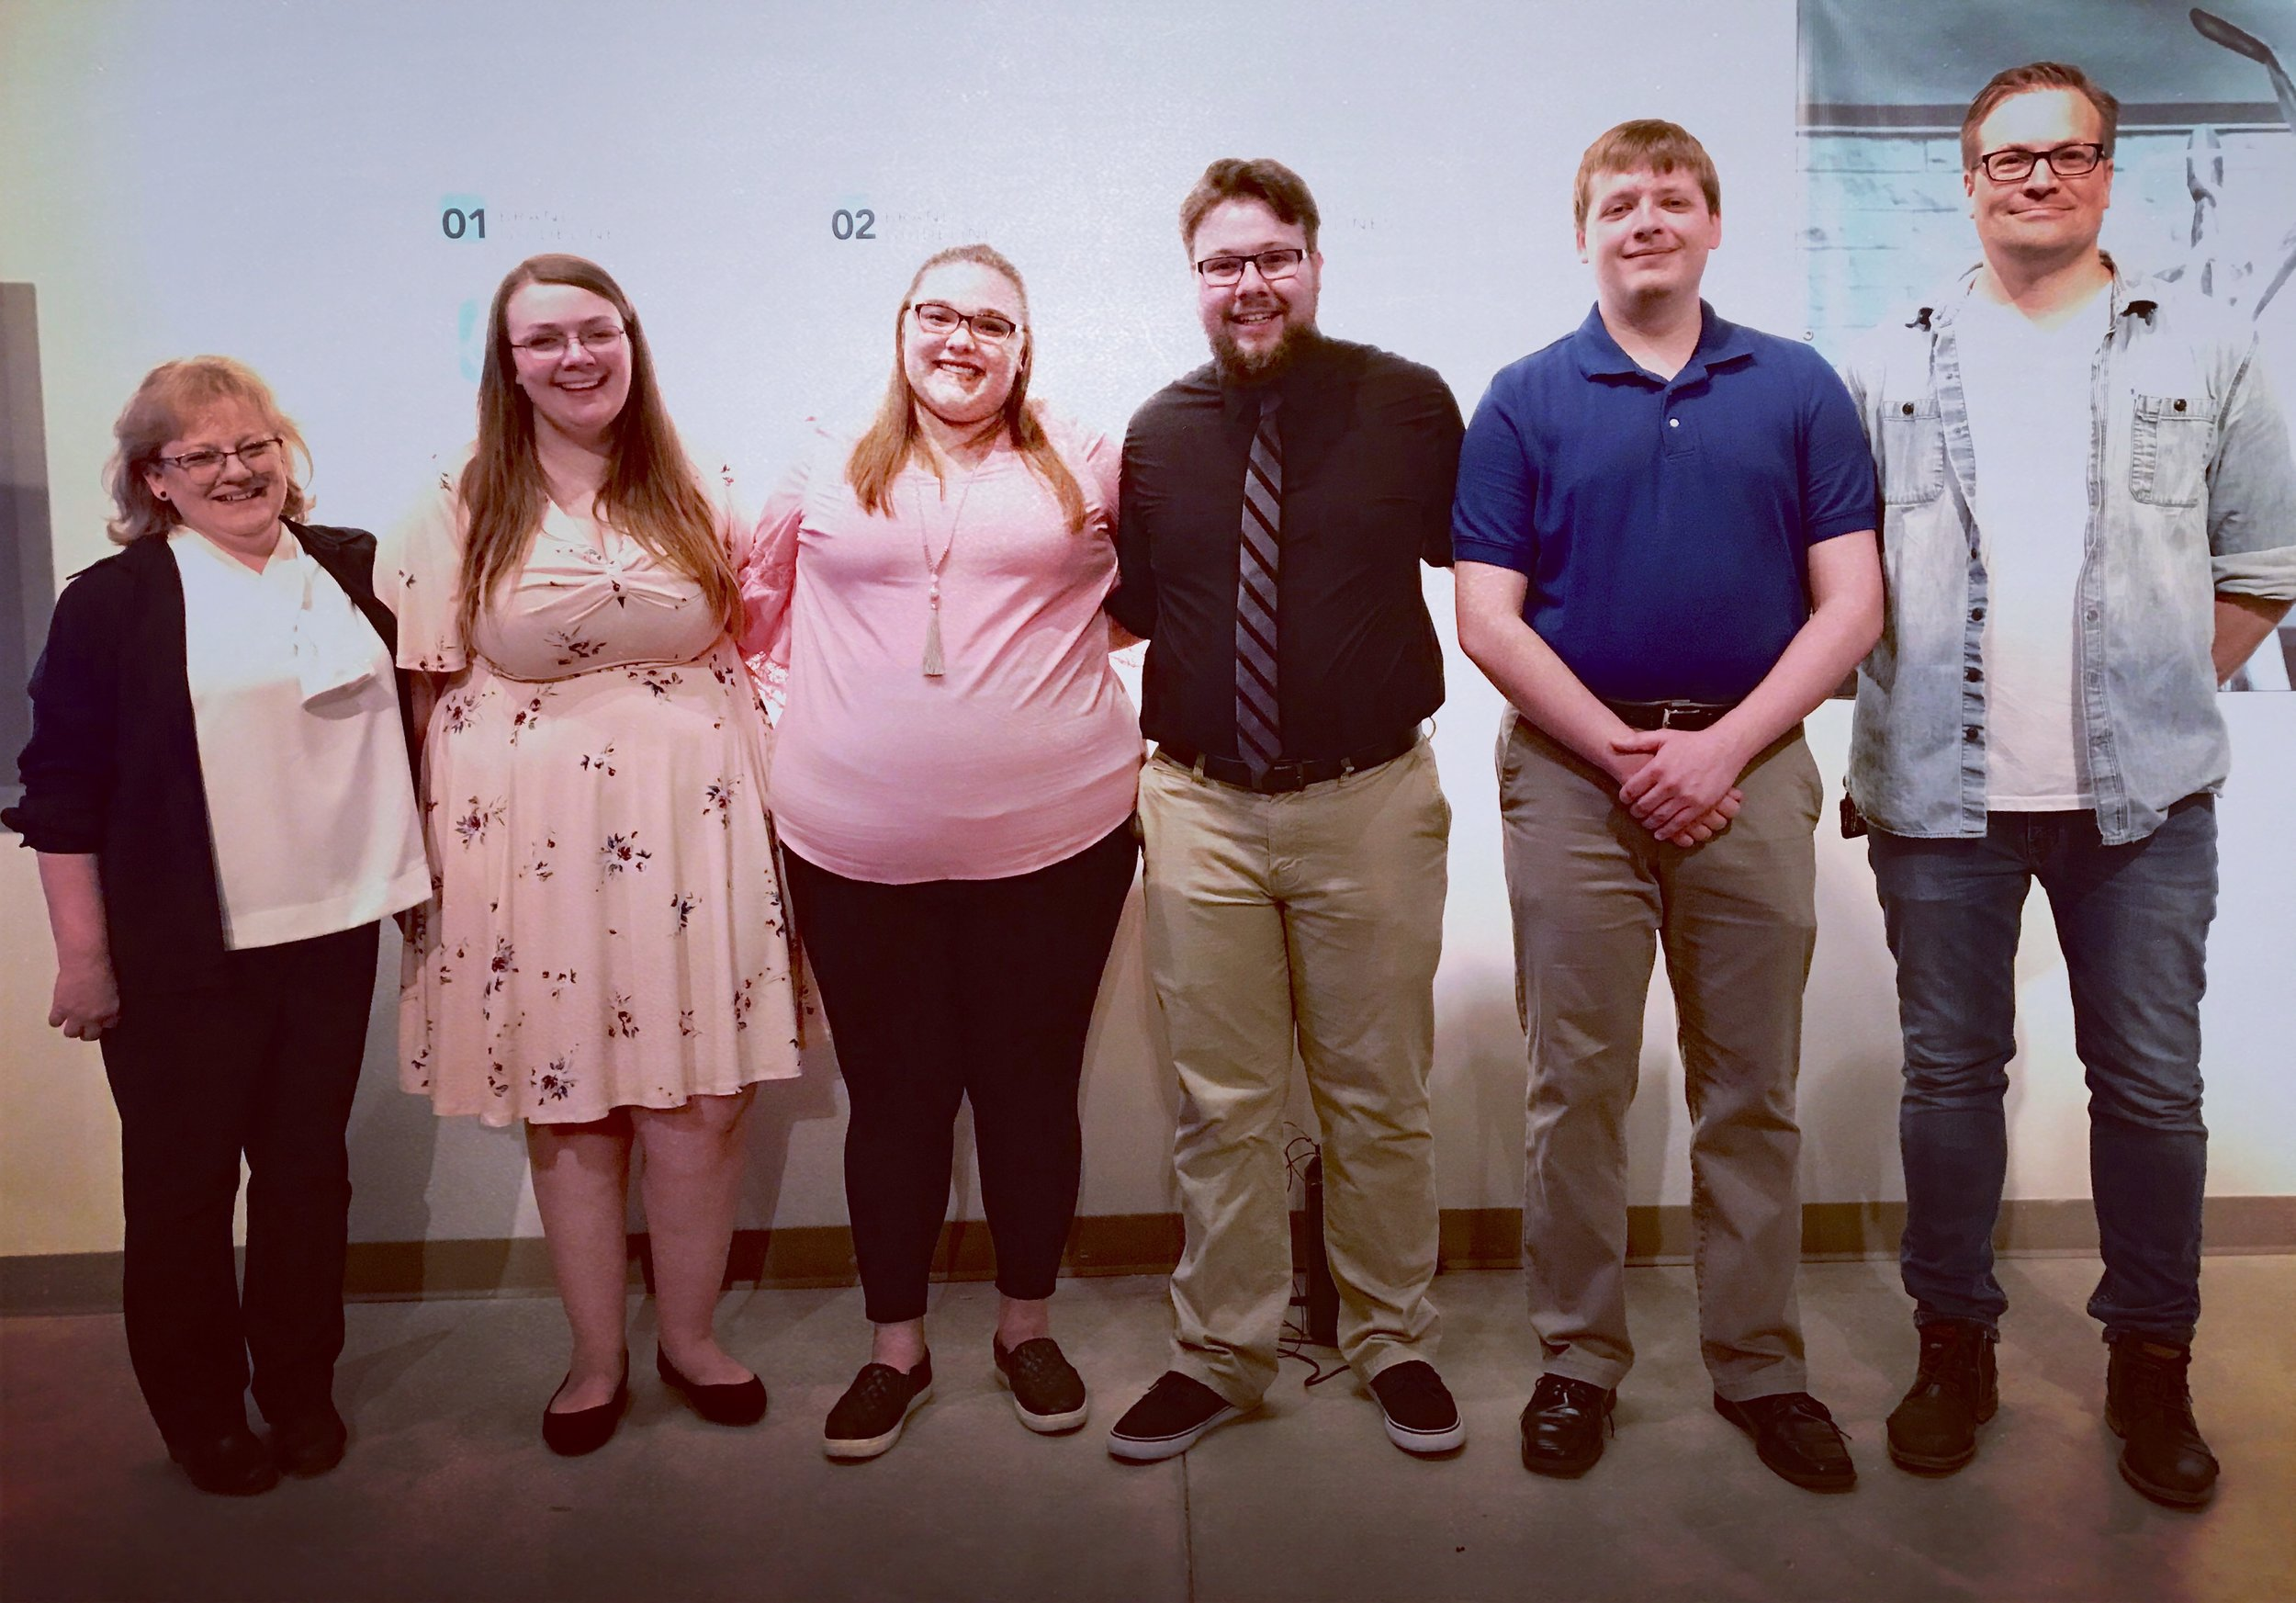 Mary Mello-Nee, Kayla Sweet, Sarah Mueller, Austin Dean, Travis Heth, David Boelter. Senior show case on May 4th 2019.